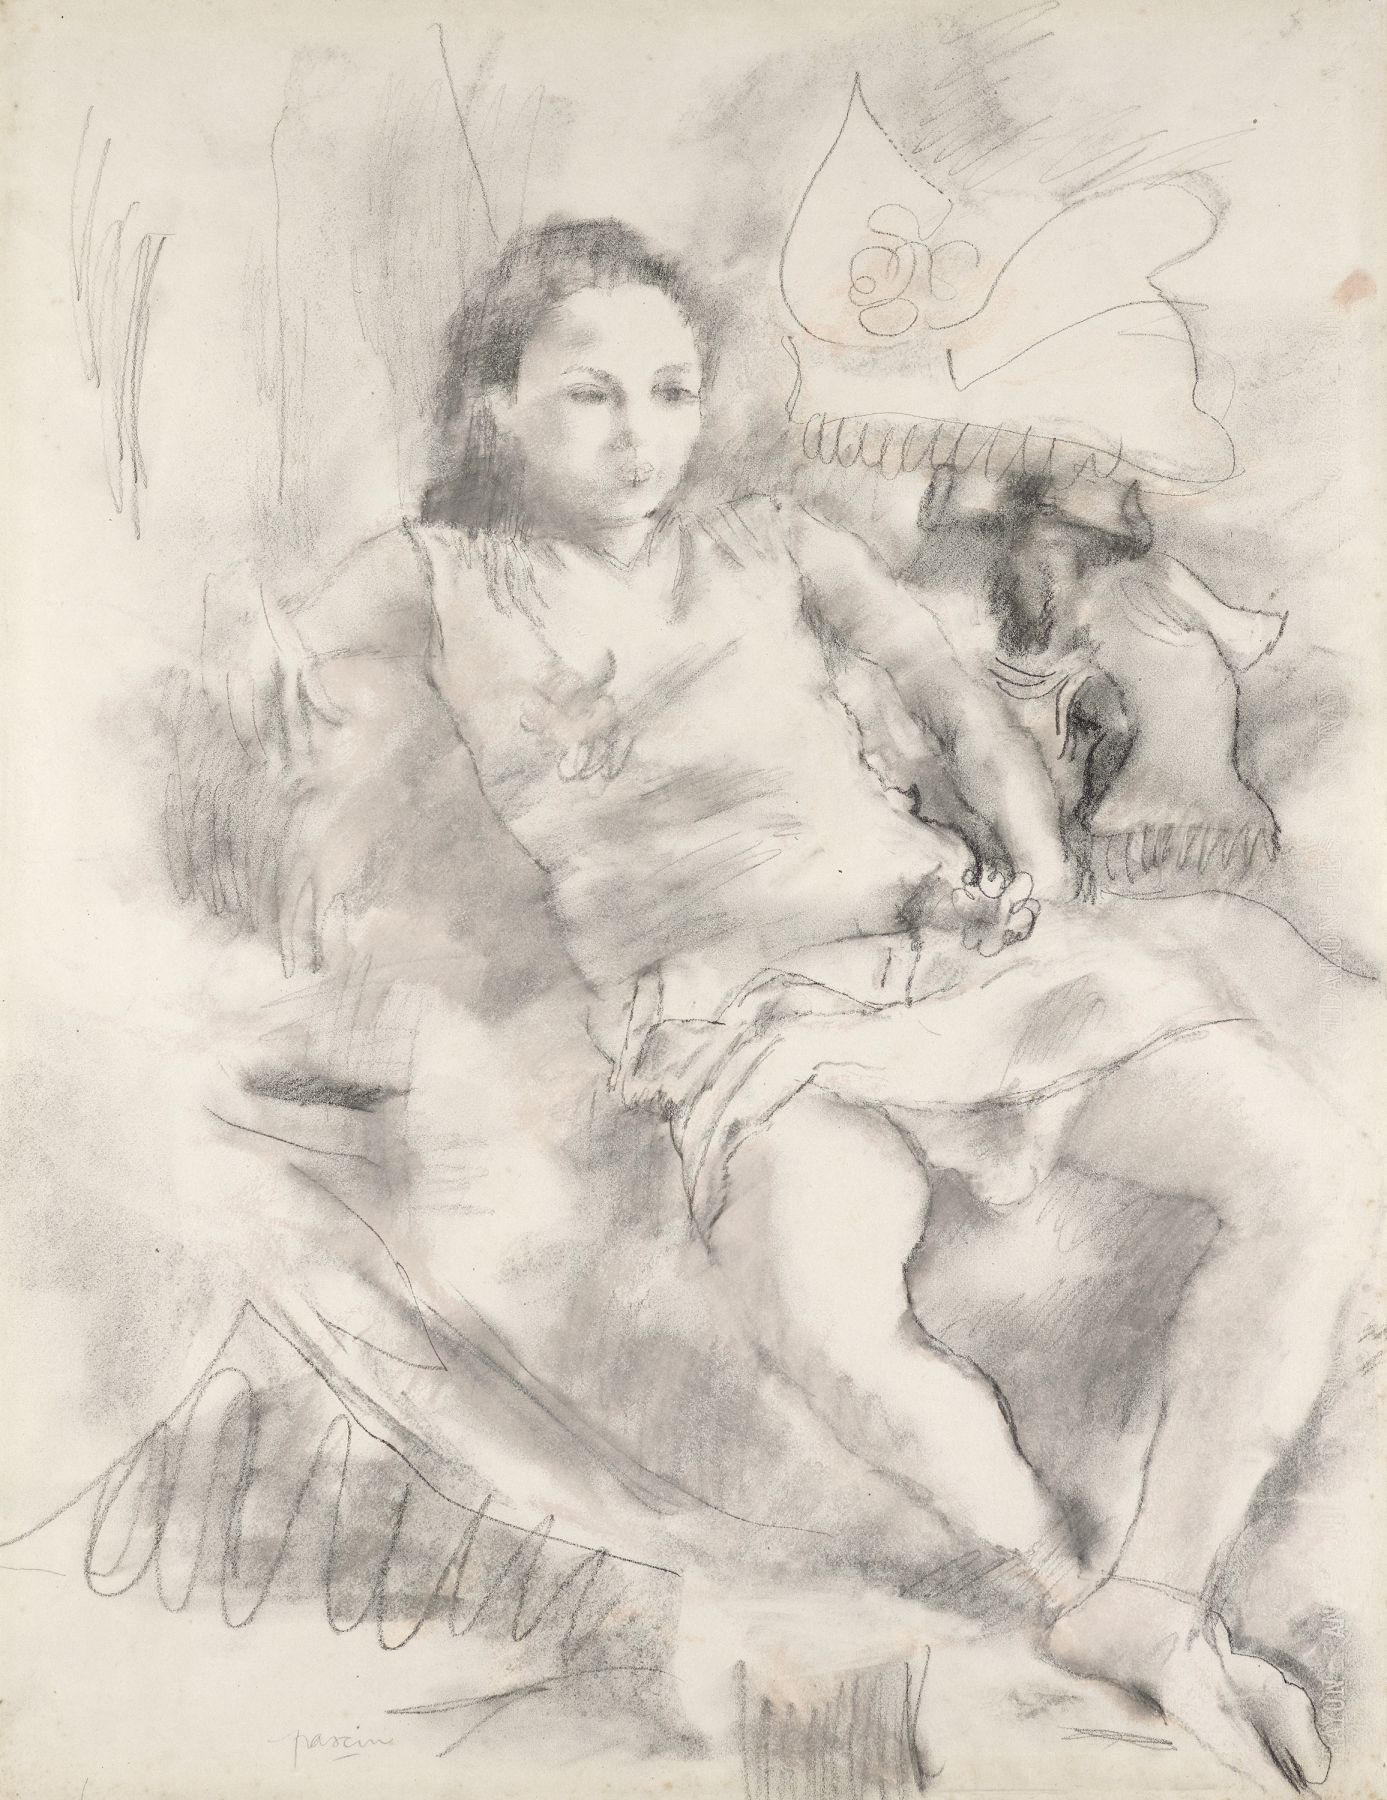 Jules Pascin, Simone, 1928, Charcoal and red chalk on paper 25 1/4 x 19 1/4 inches